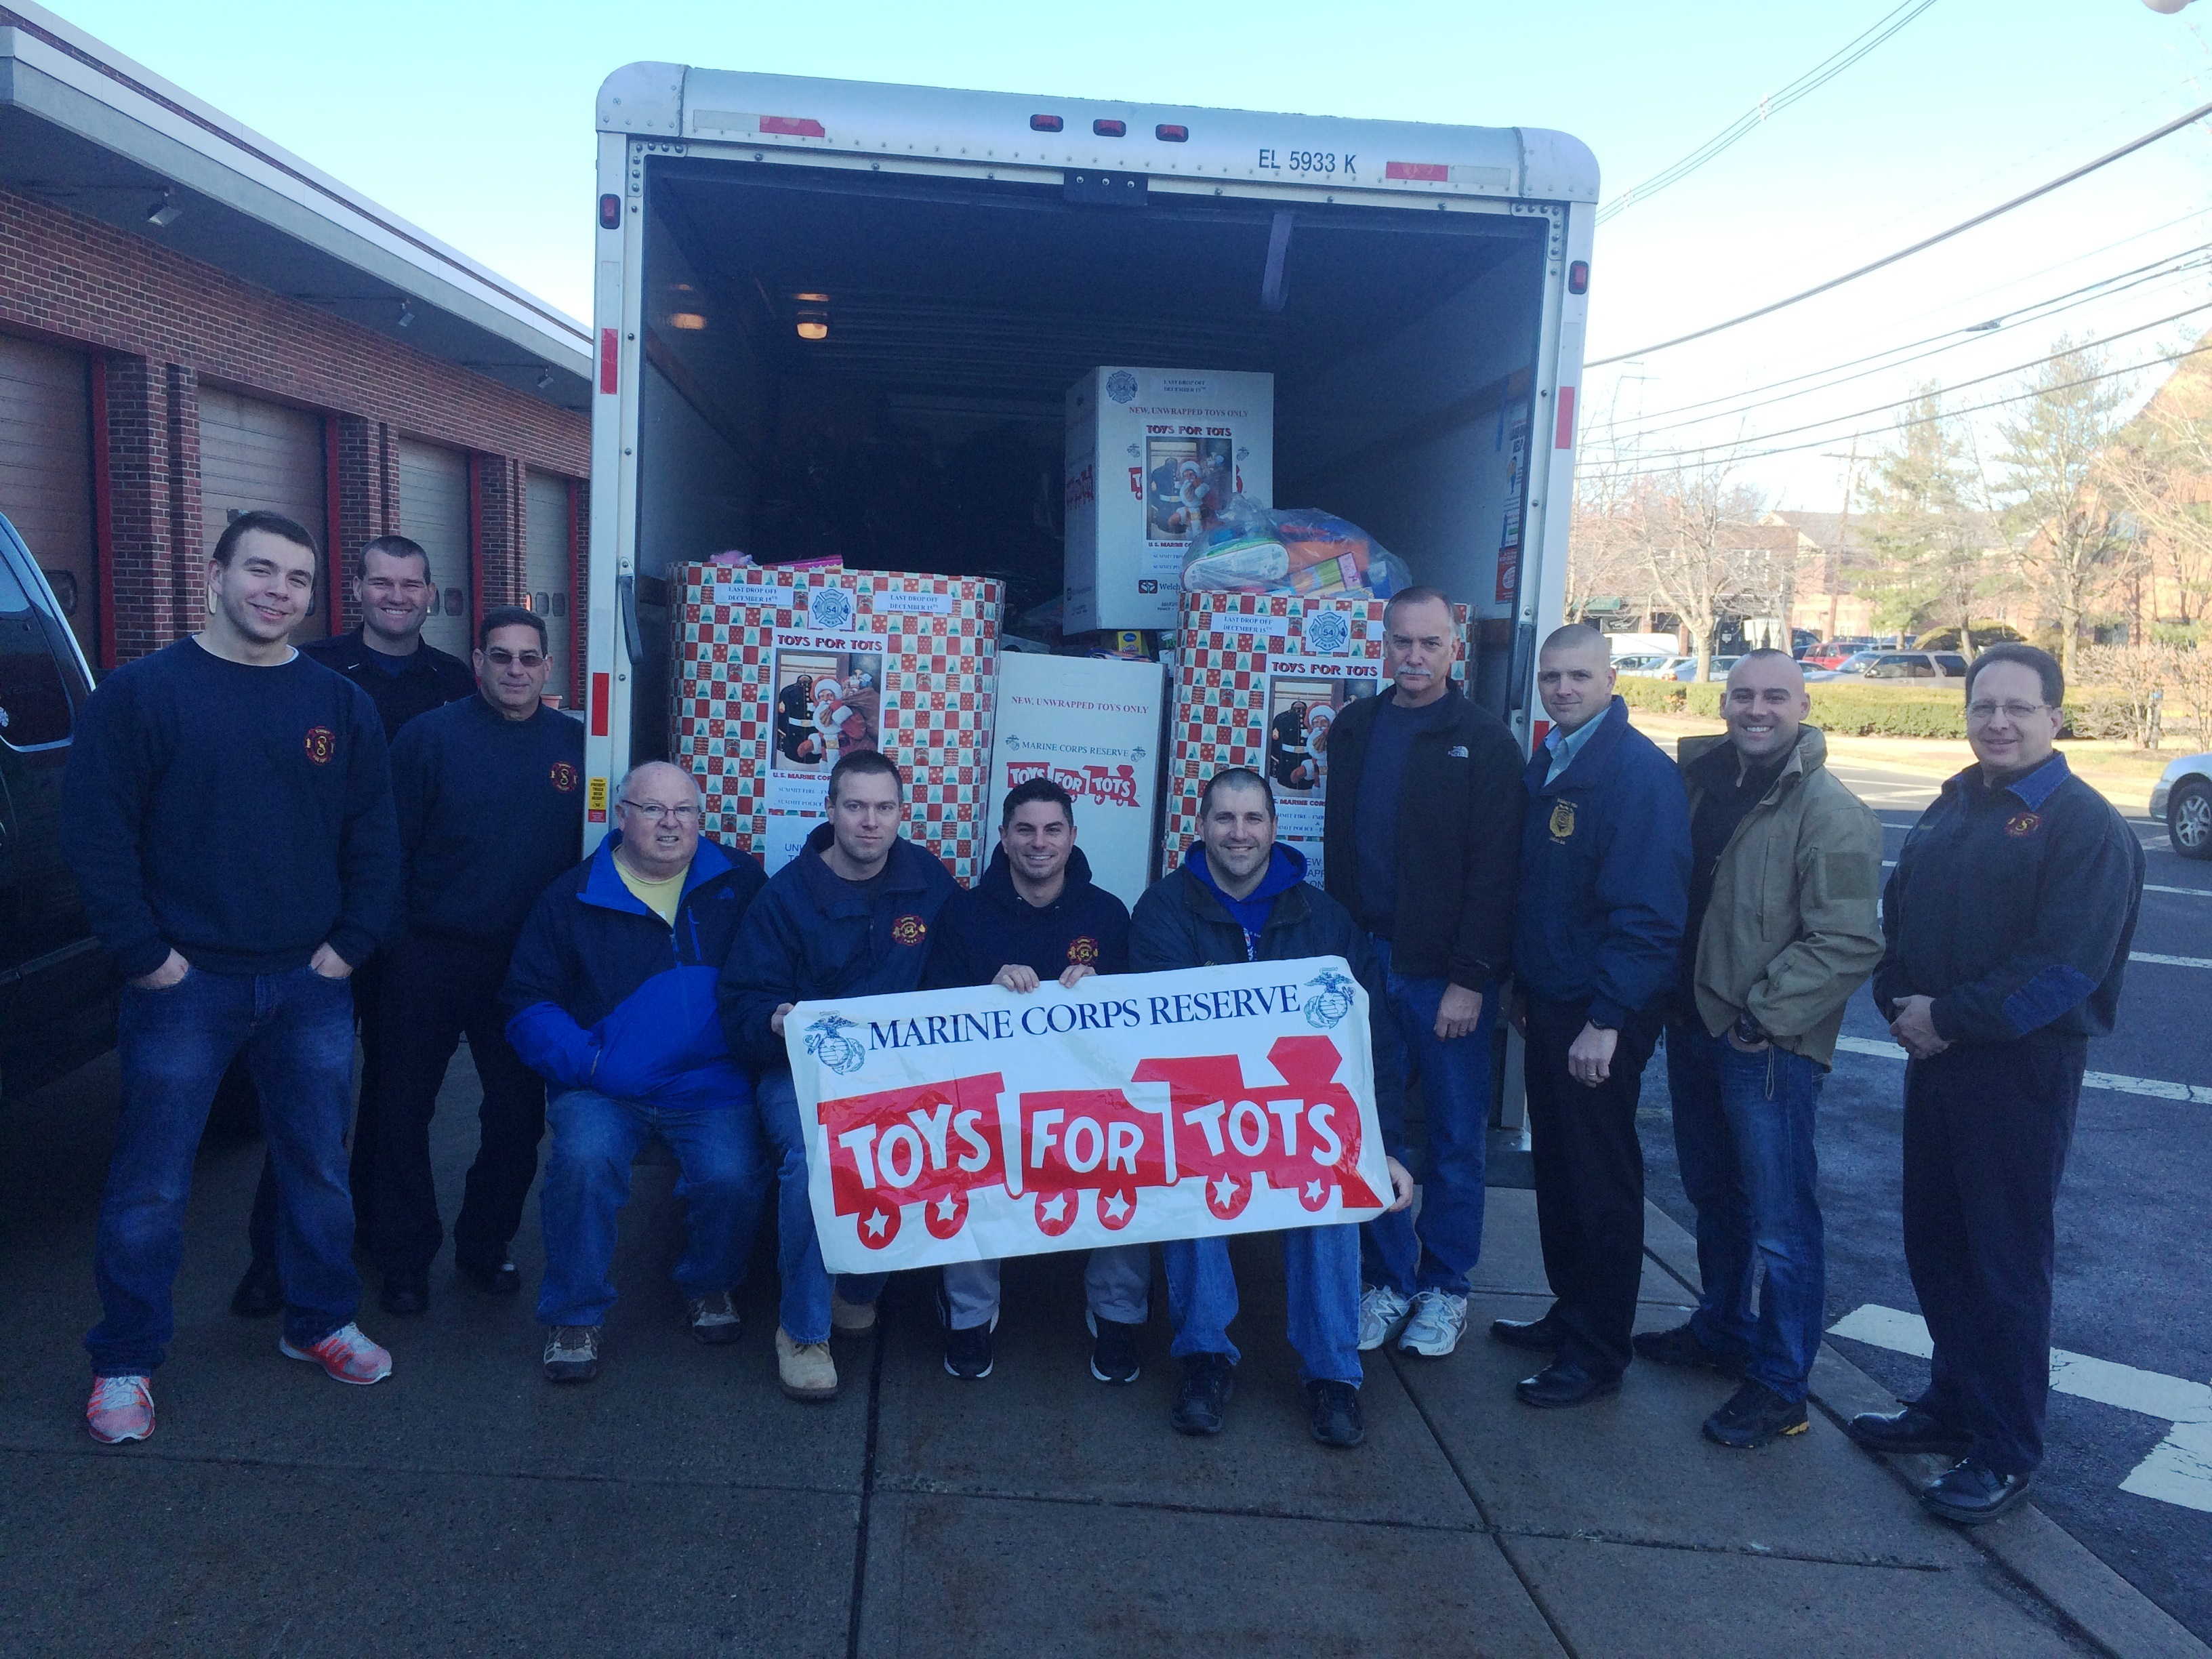 3fbbe1e27ebd4342aebc_toys_for_tots_2014.jpeg